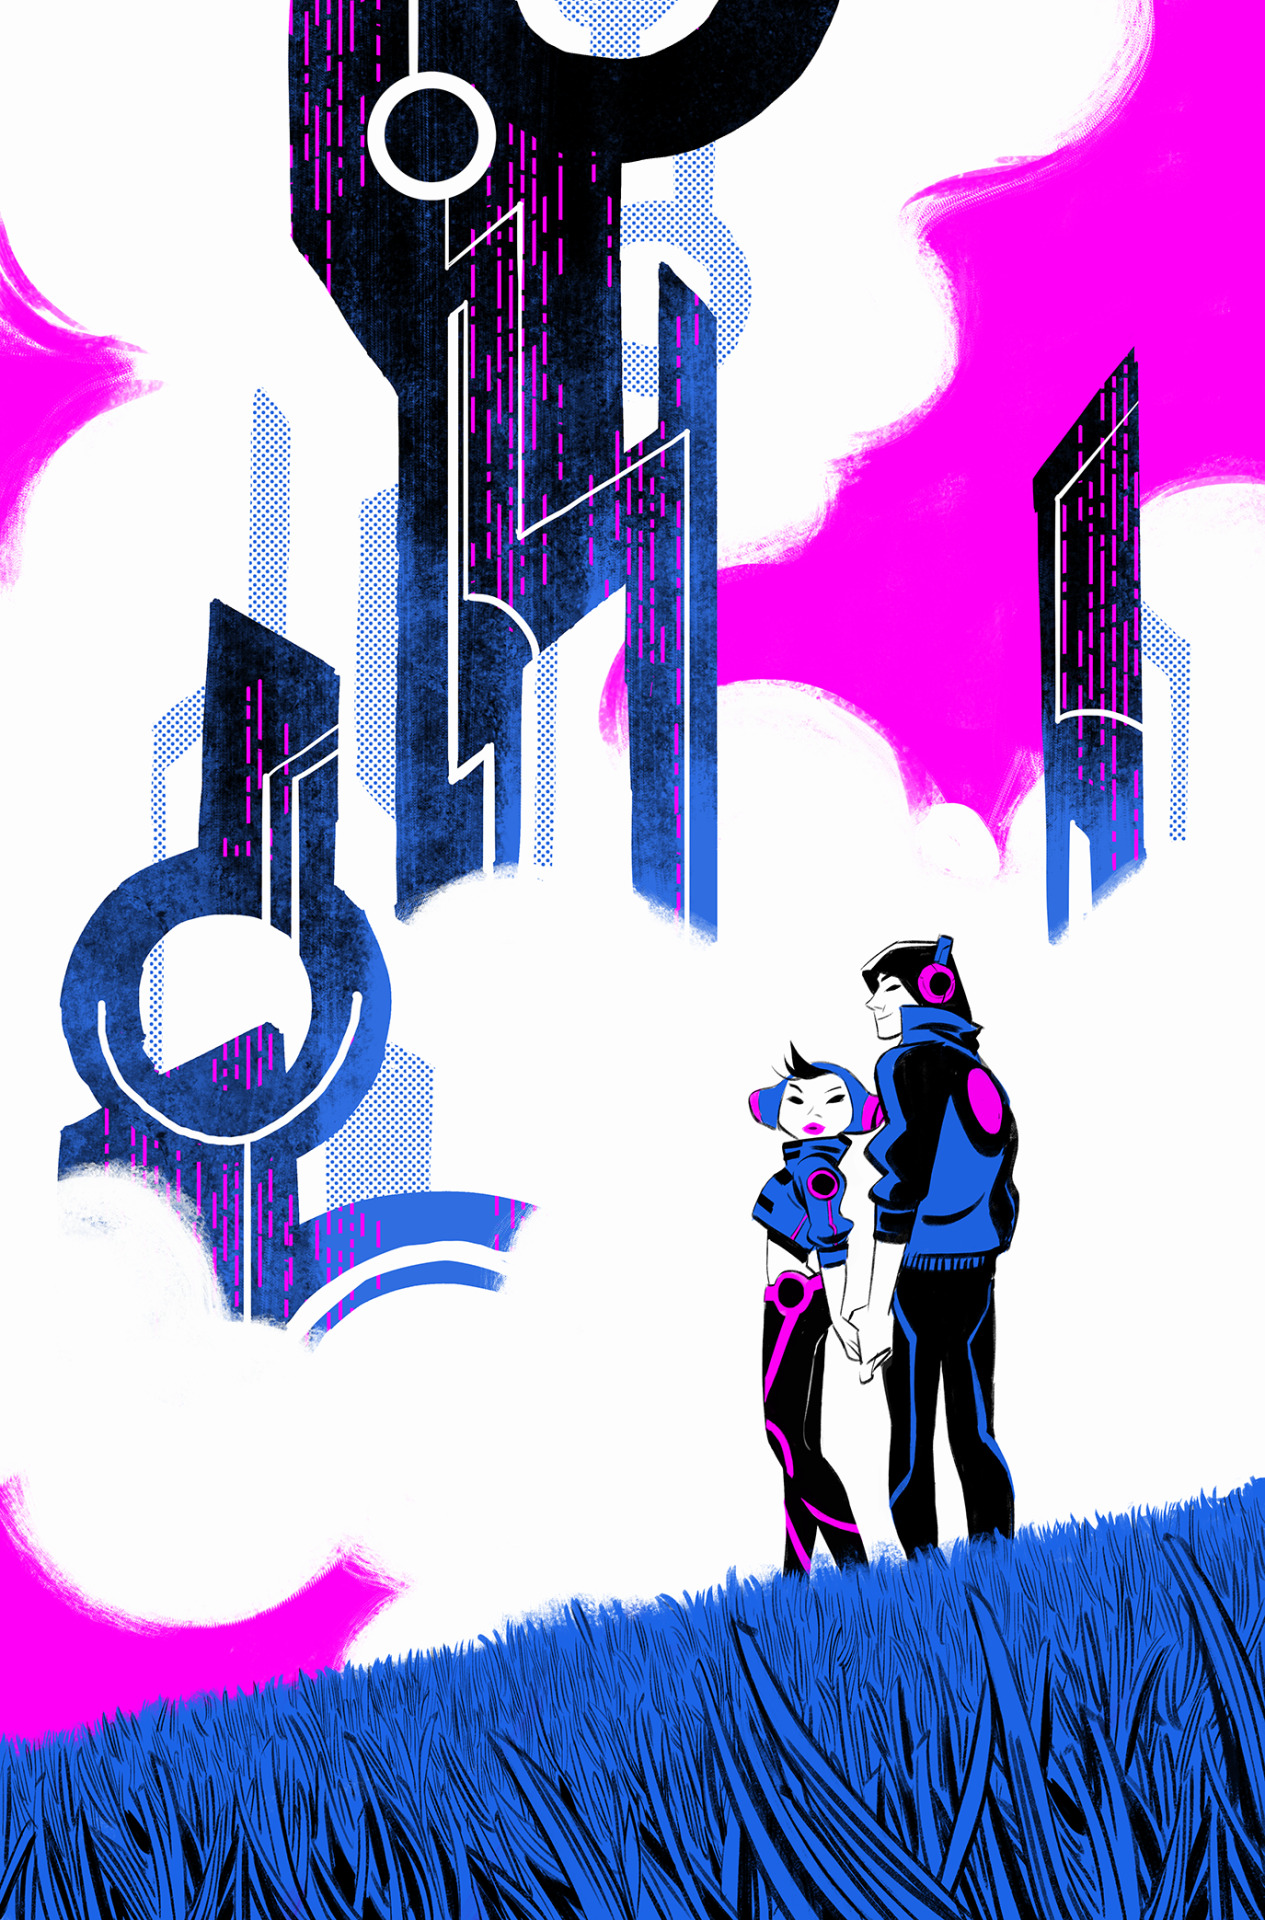 Think of a City by Mingjue Helen Chen and Sam Humphries